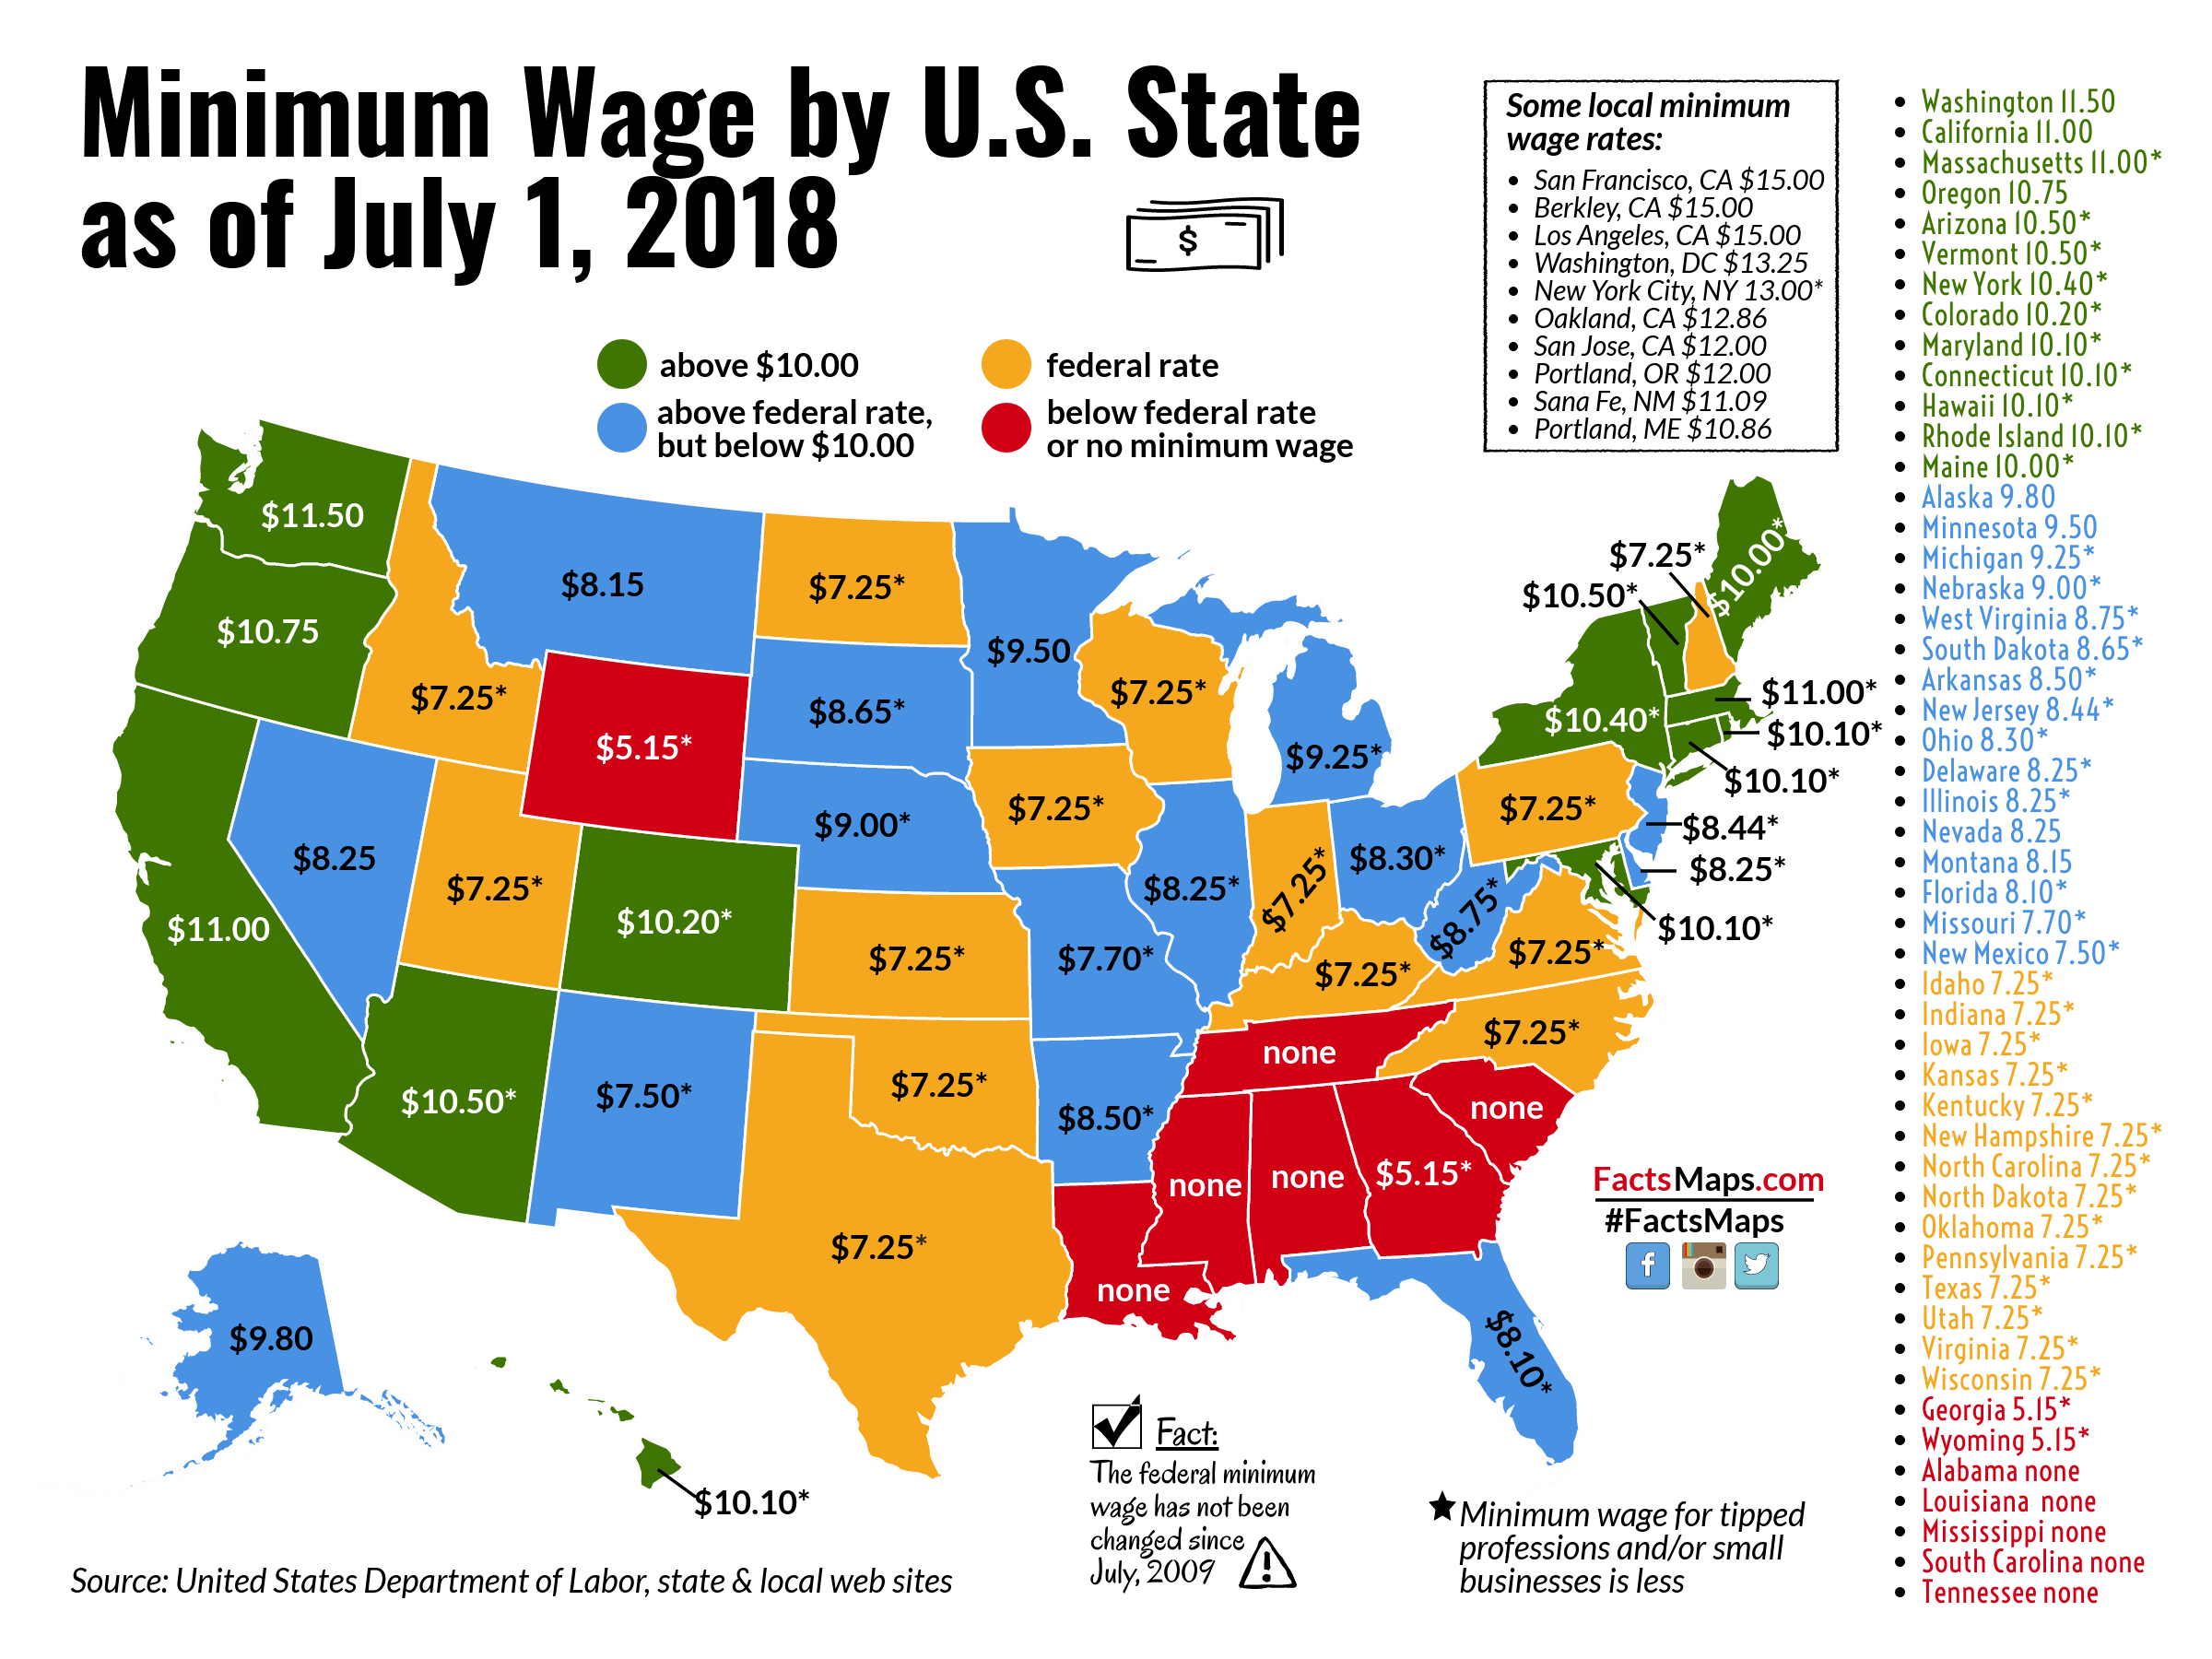 Us Minimum Wage Map Minimum Wage by U.S. State as of July 1, 2018   FactsMaps